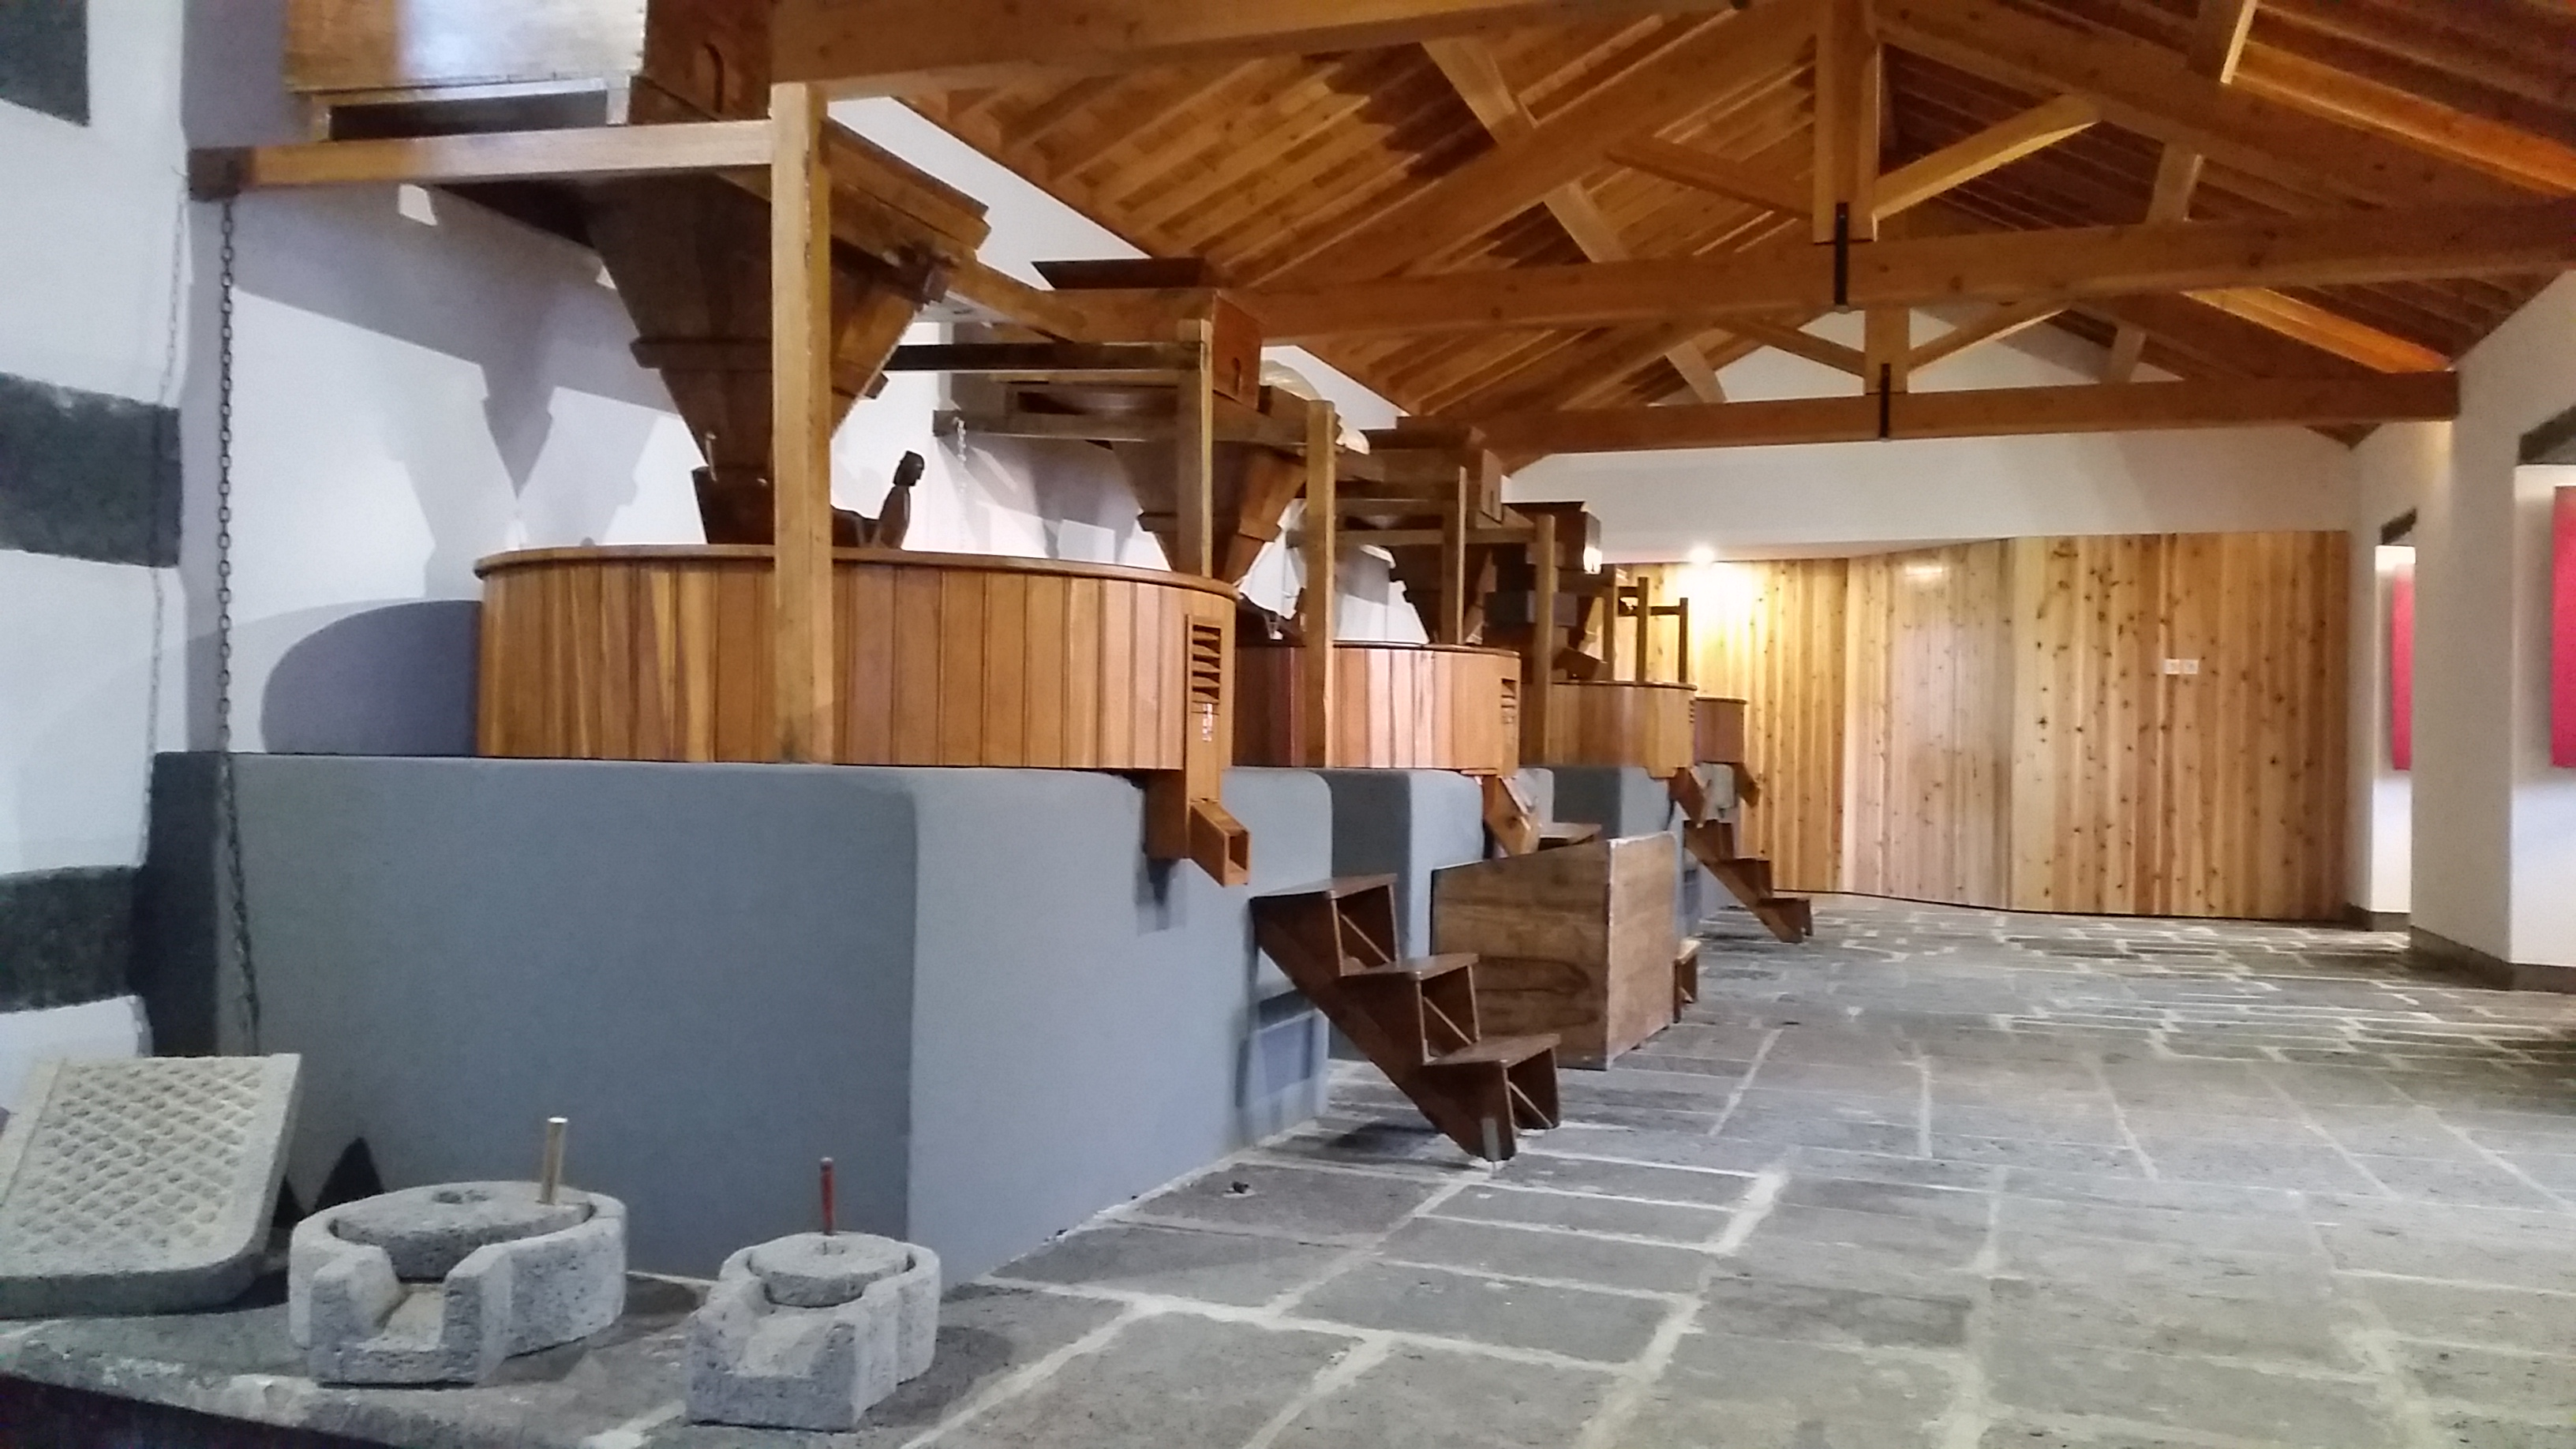 Interior of the watermill